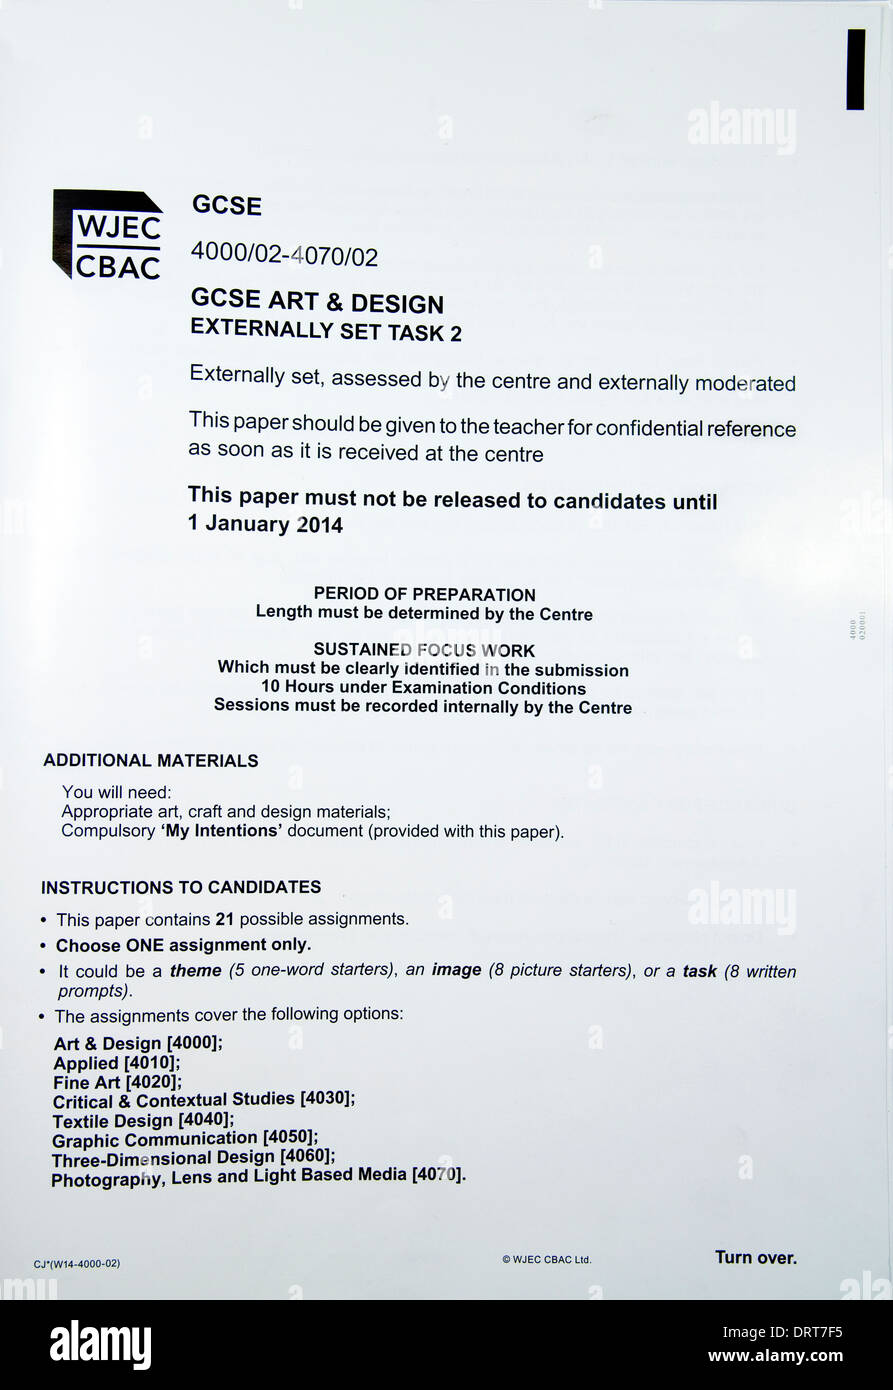 WJEC Art and Design GCSE external task information sheet - Stock Image